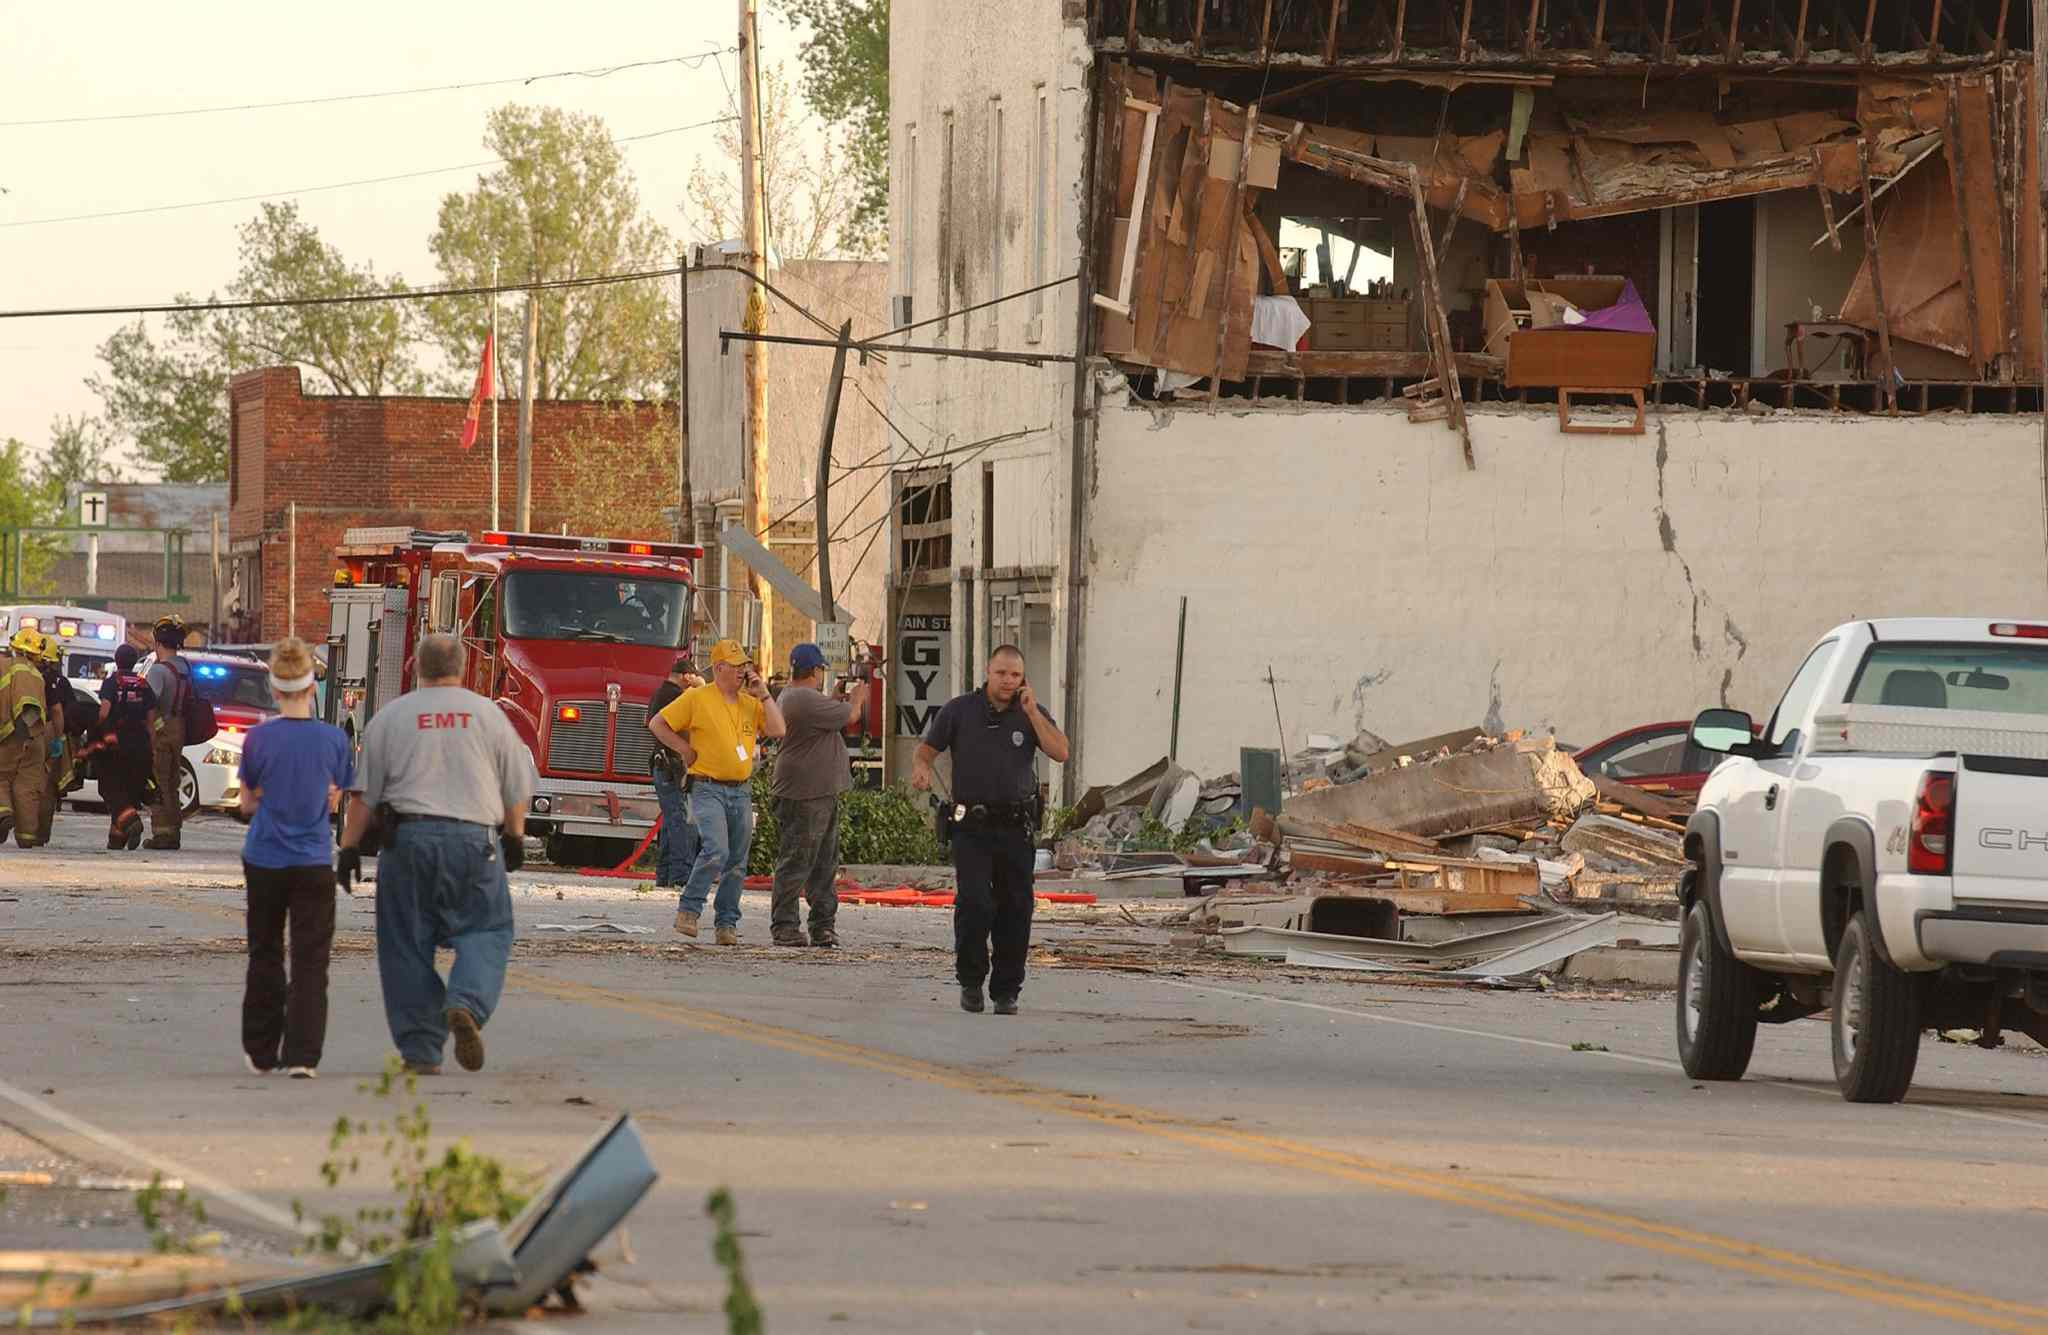 First responders, volunteers and firemen gather on Main Street in Quapaw, Okla., after a tornado struck the city on Sunday evening.